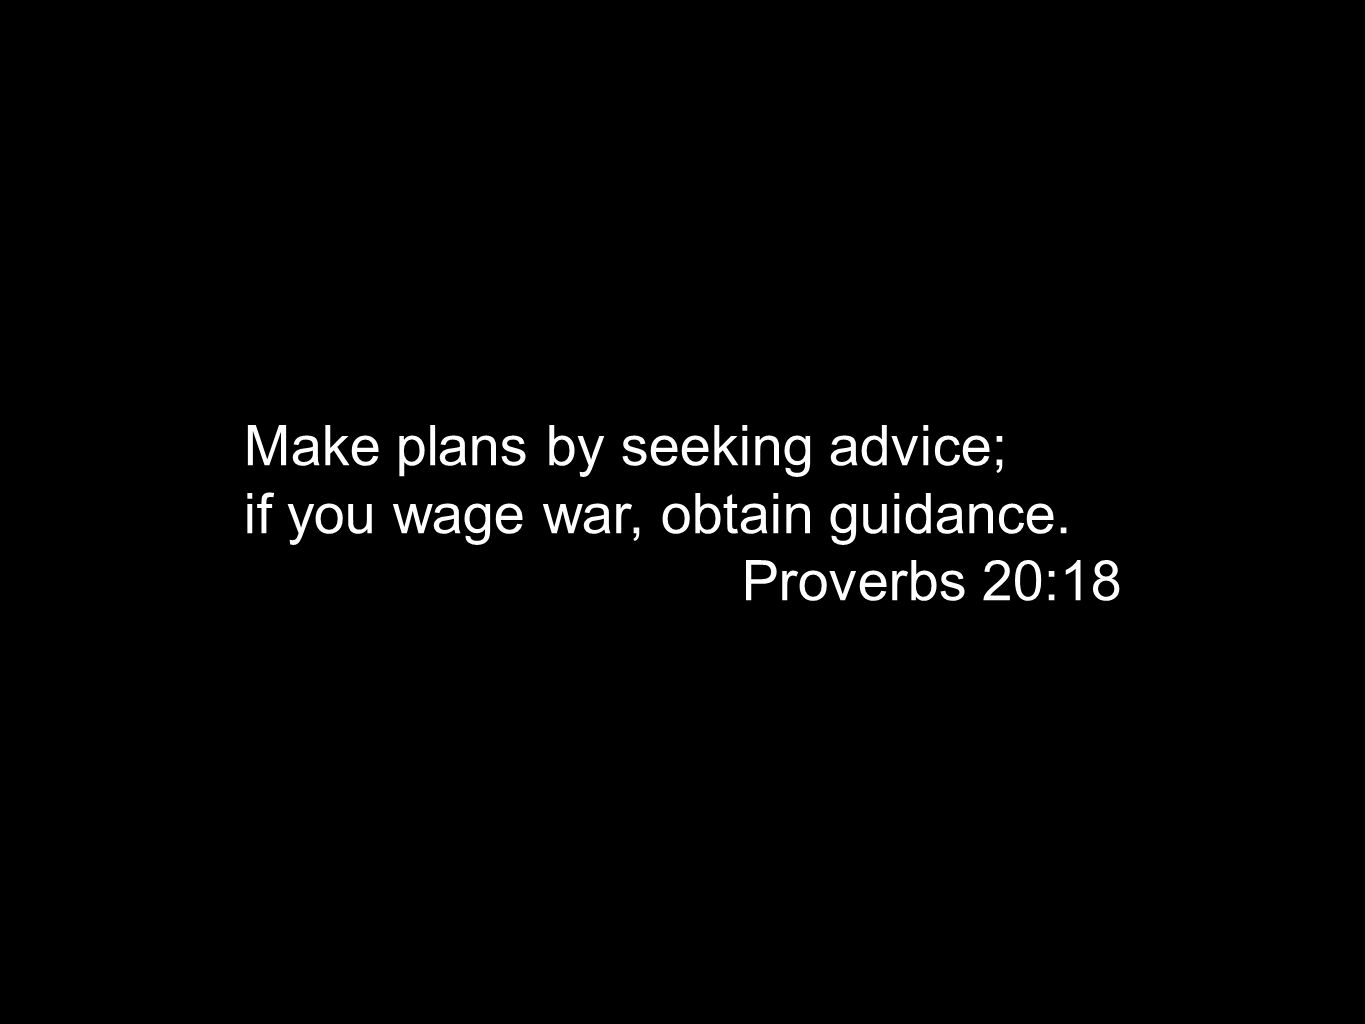 for waging war you need guidance, and for victory many advisers. Proverbs 24:6